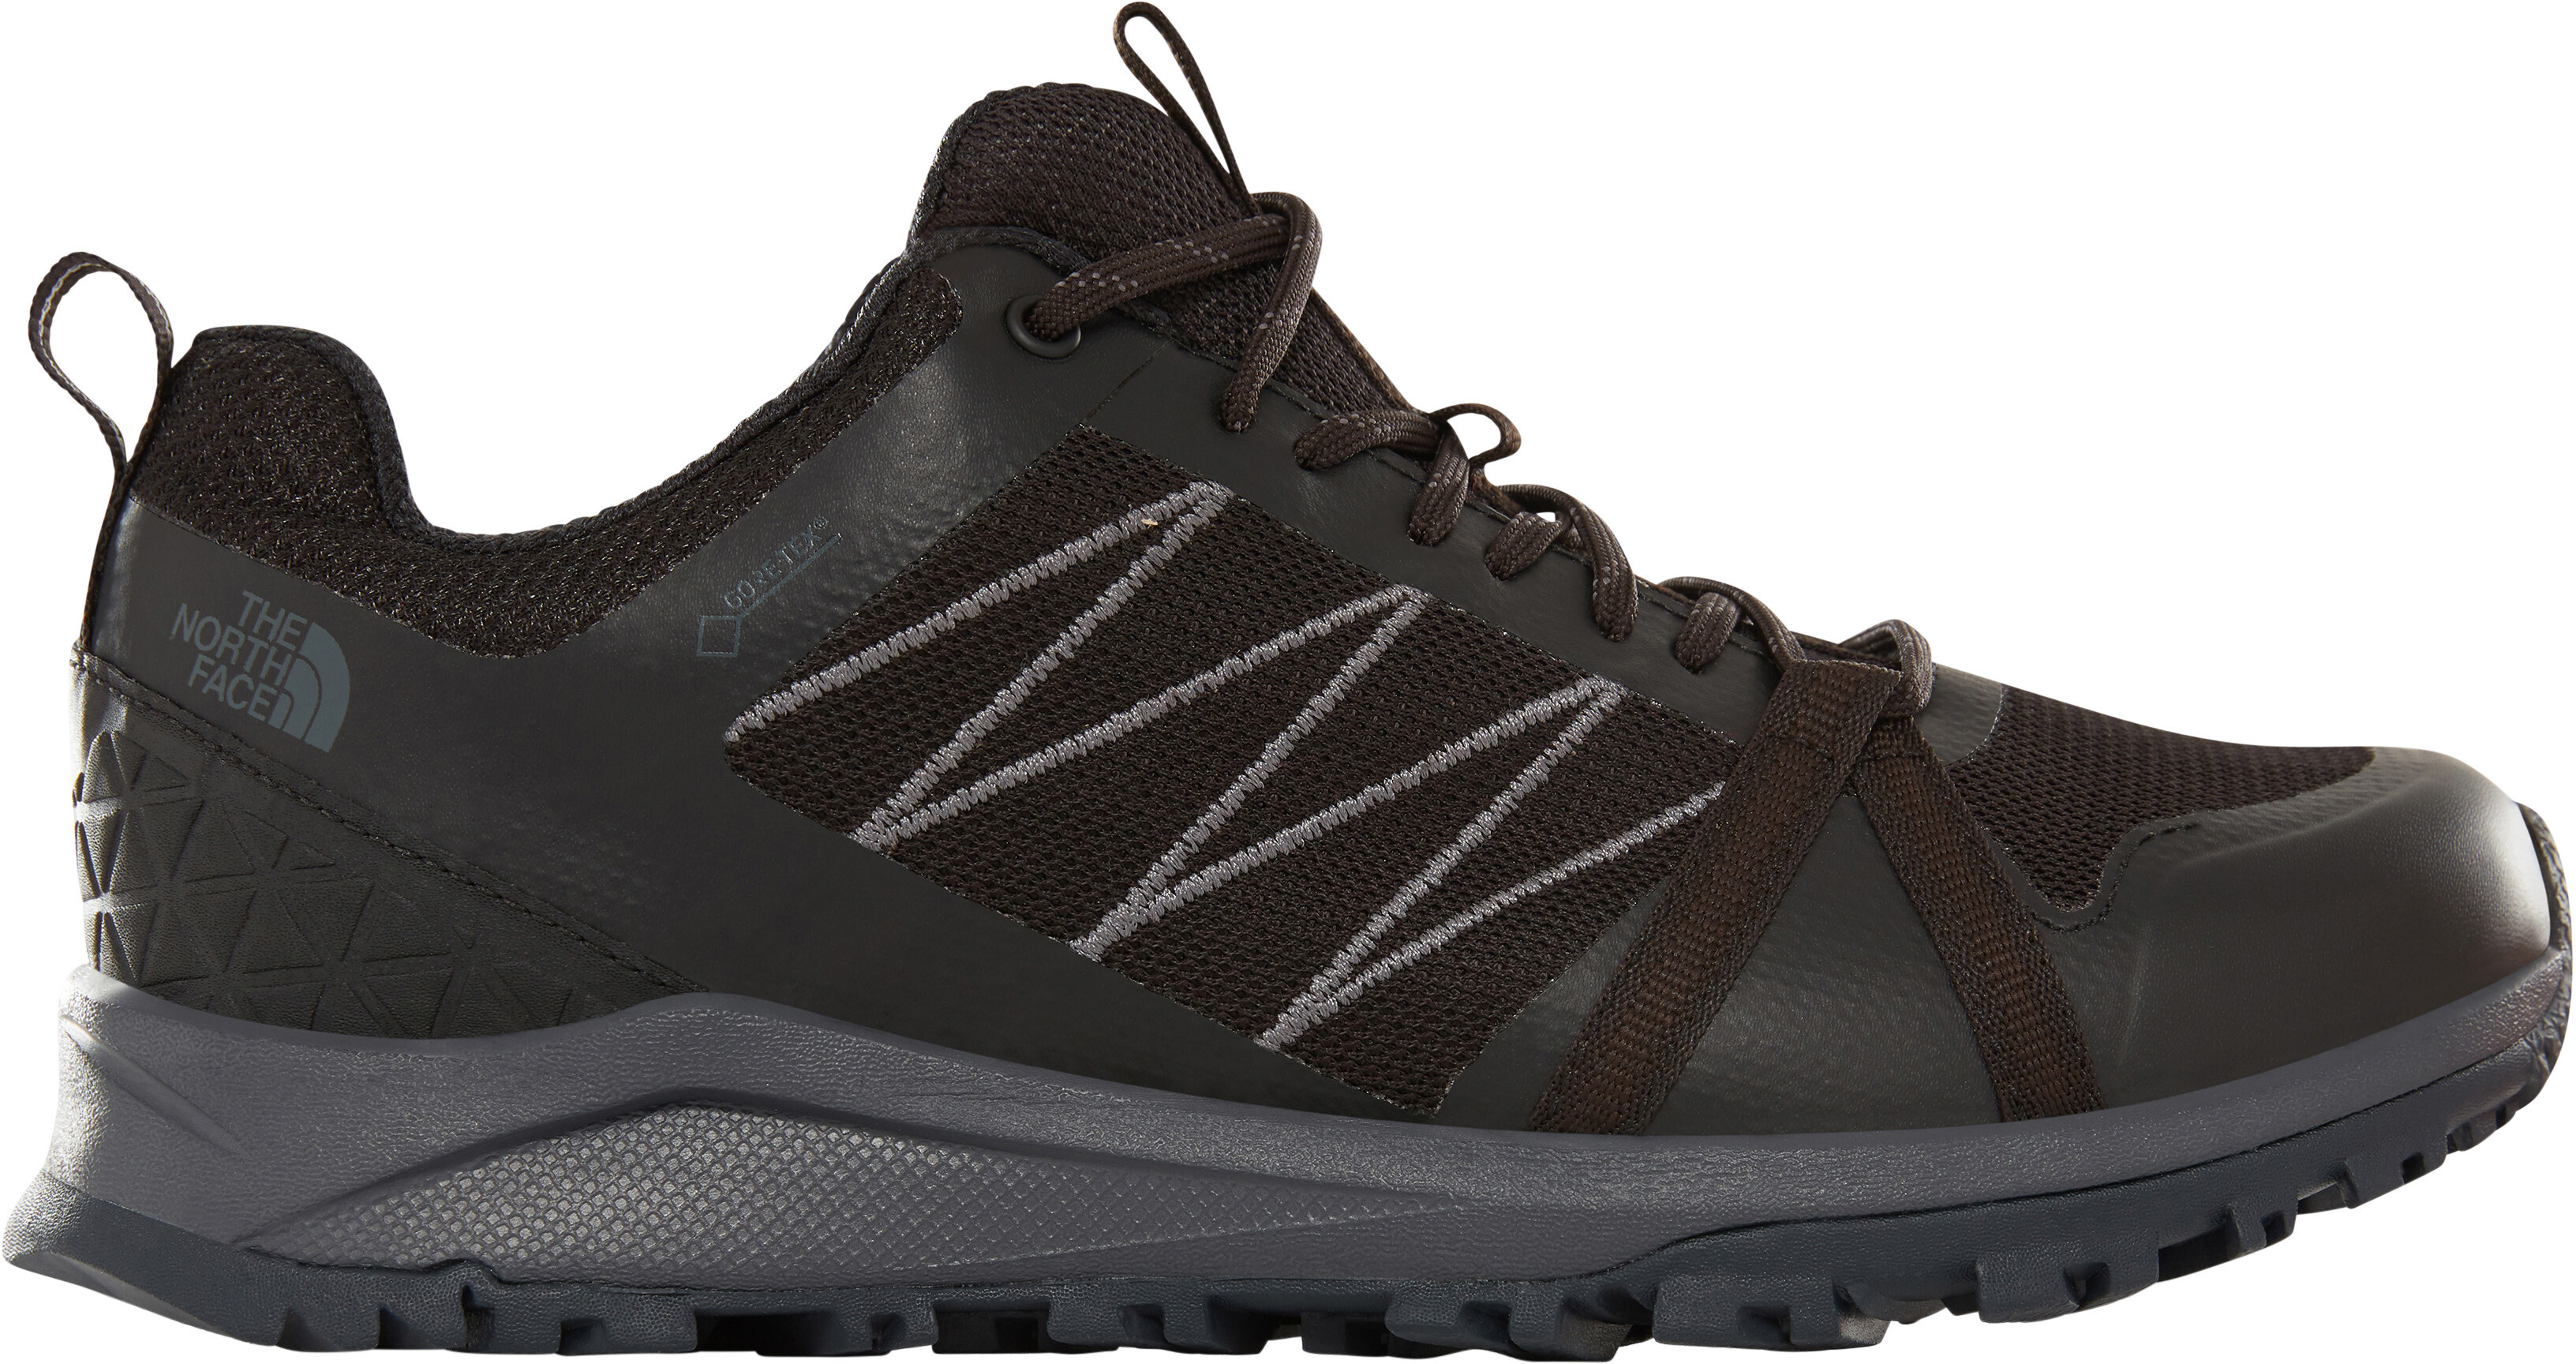 niskie ceny oficjalne zdjęcia Data wydania The North Face Litewave Fastpack II GTX Shoes Women tnf black/ebony grey